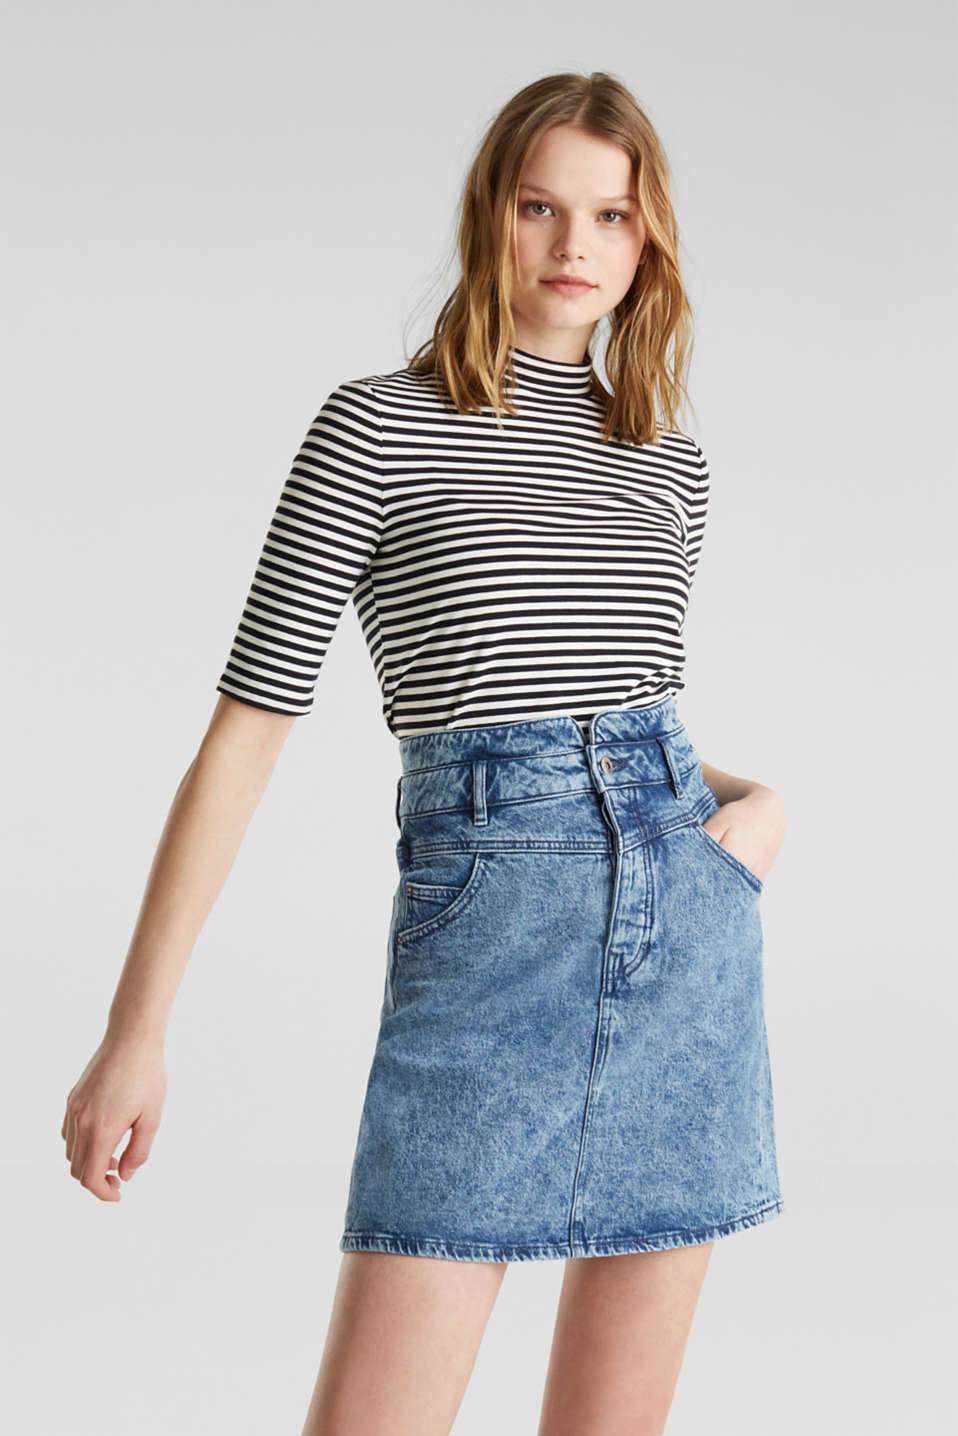 edc - Denim skirt with a button placket, recycled